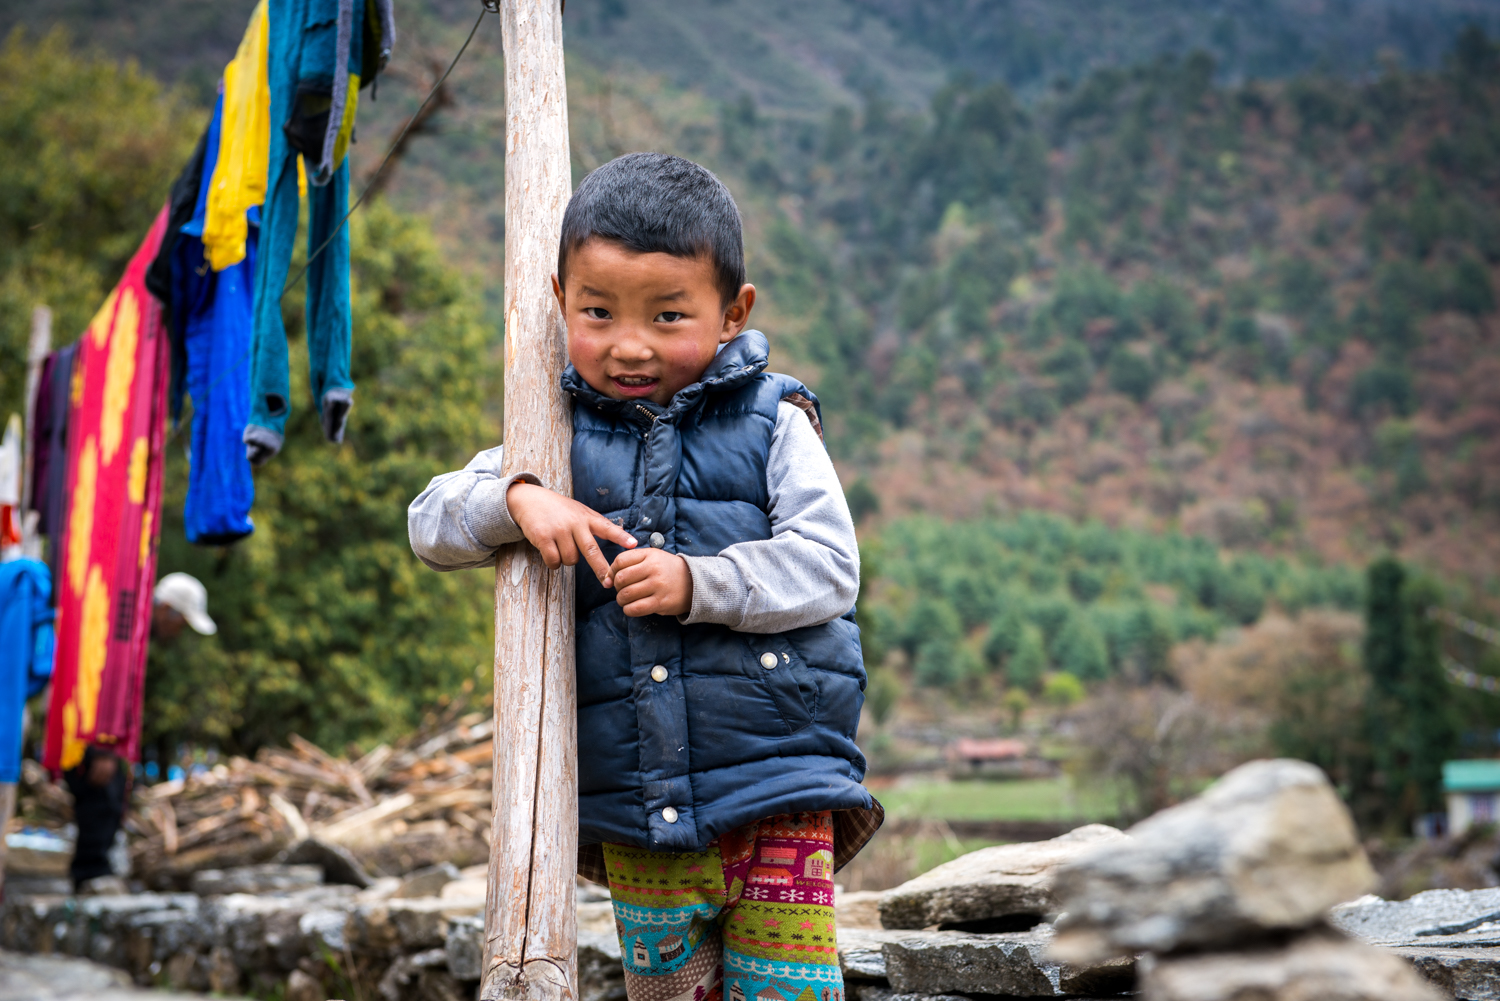 A boy shyly greets us on our descent from Everest Basecamp - Lukla, Nepal.